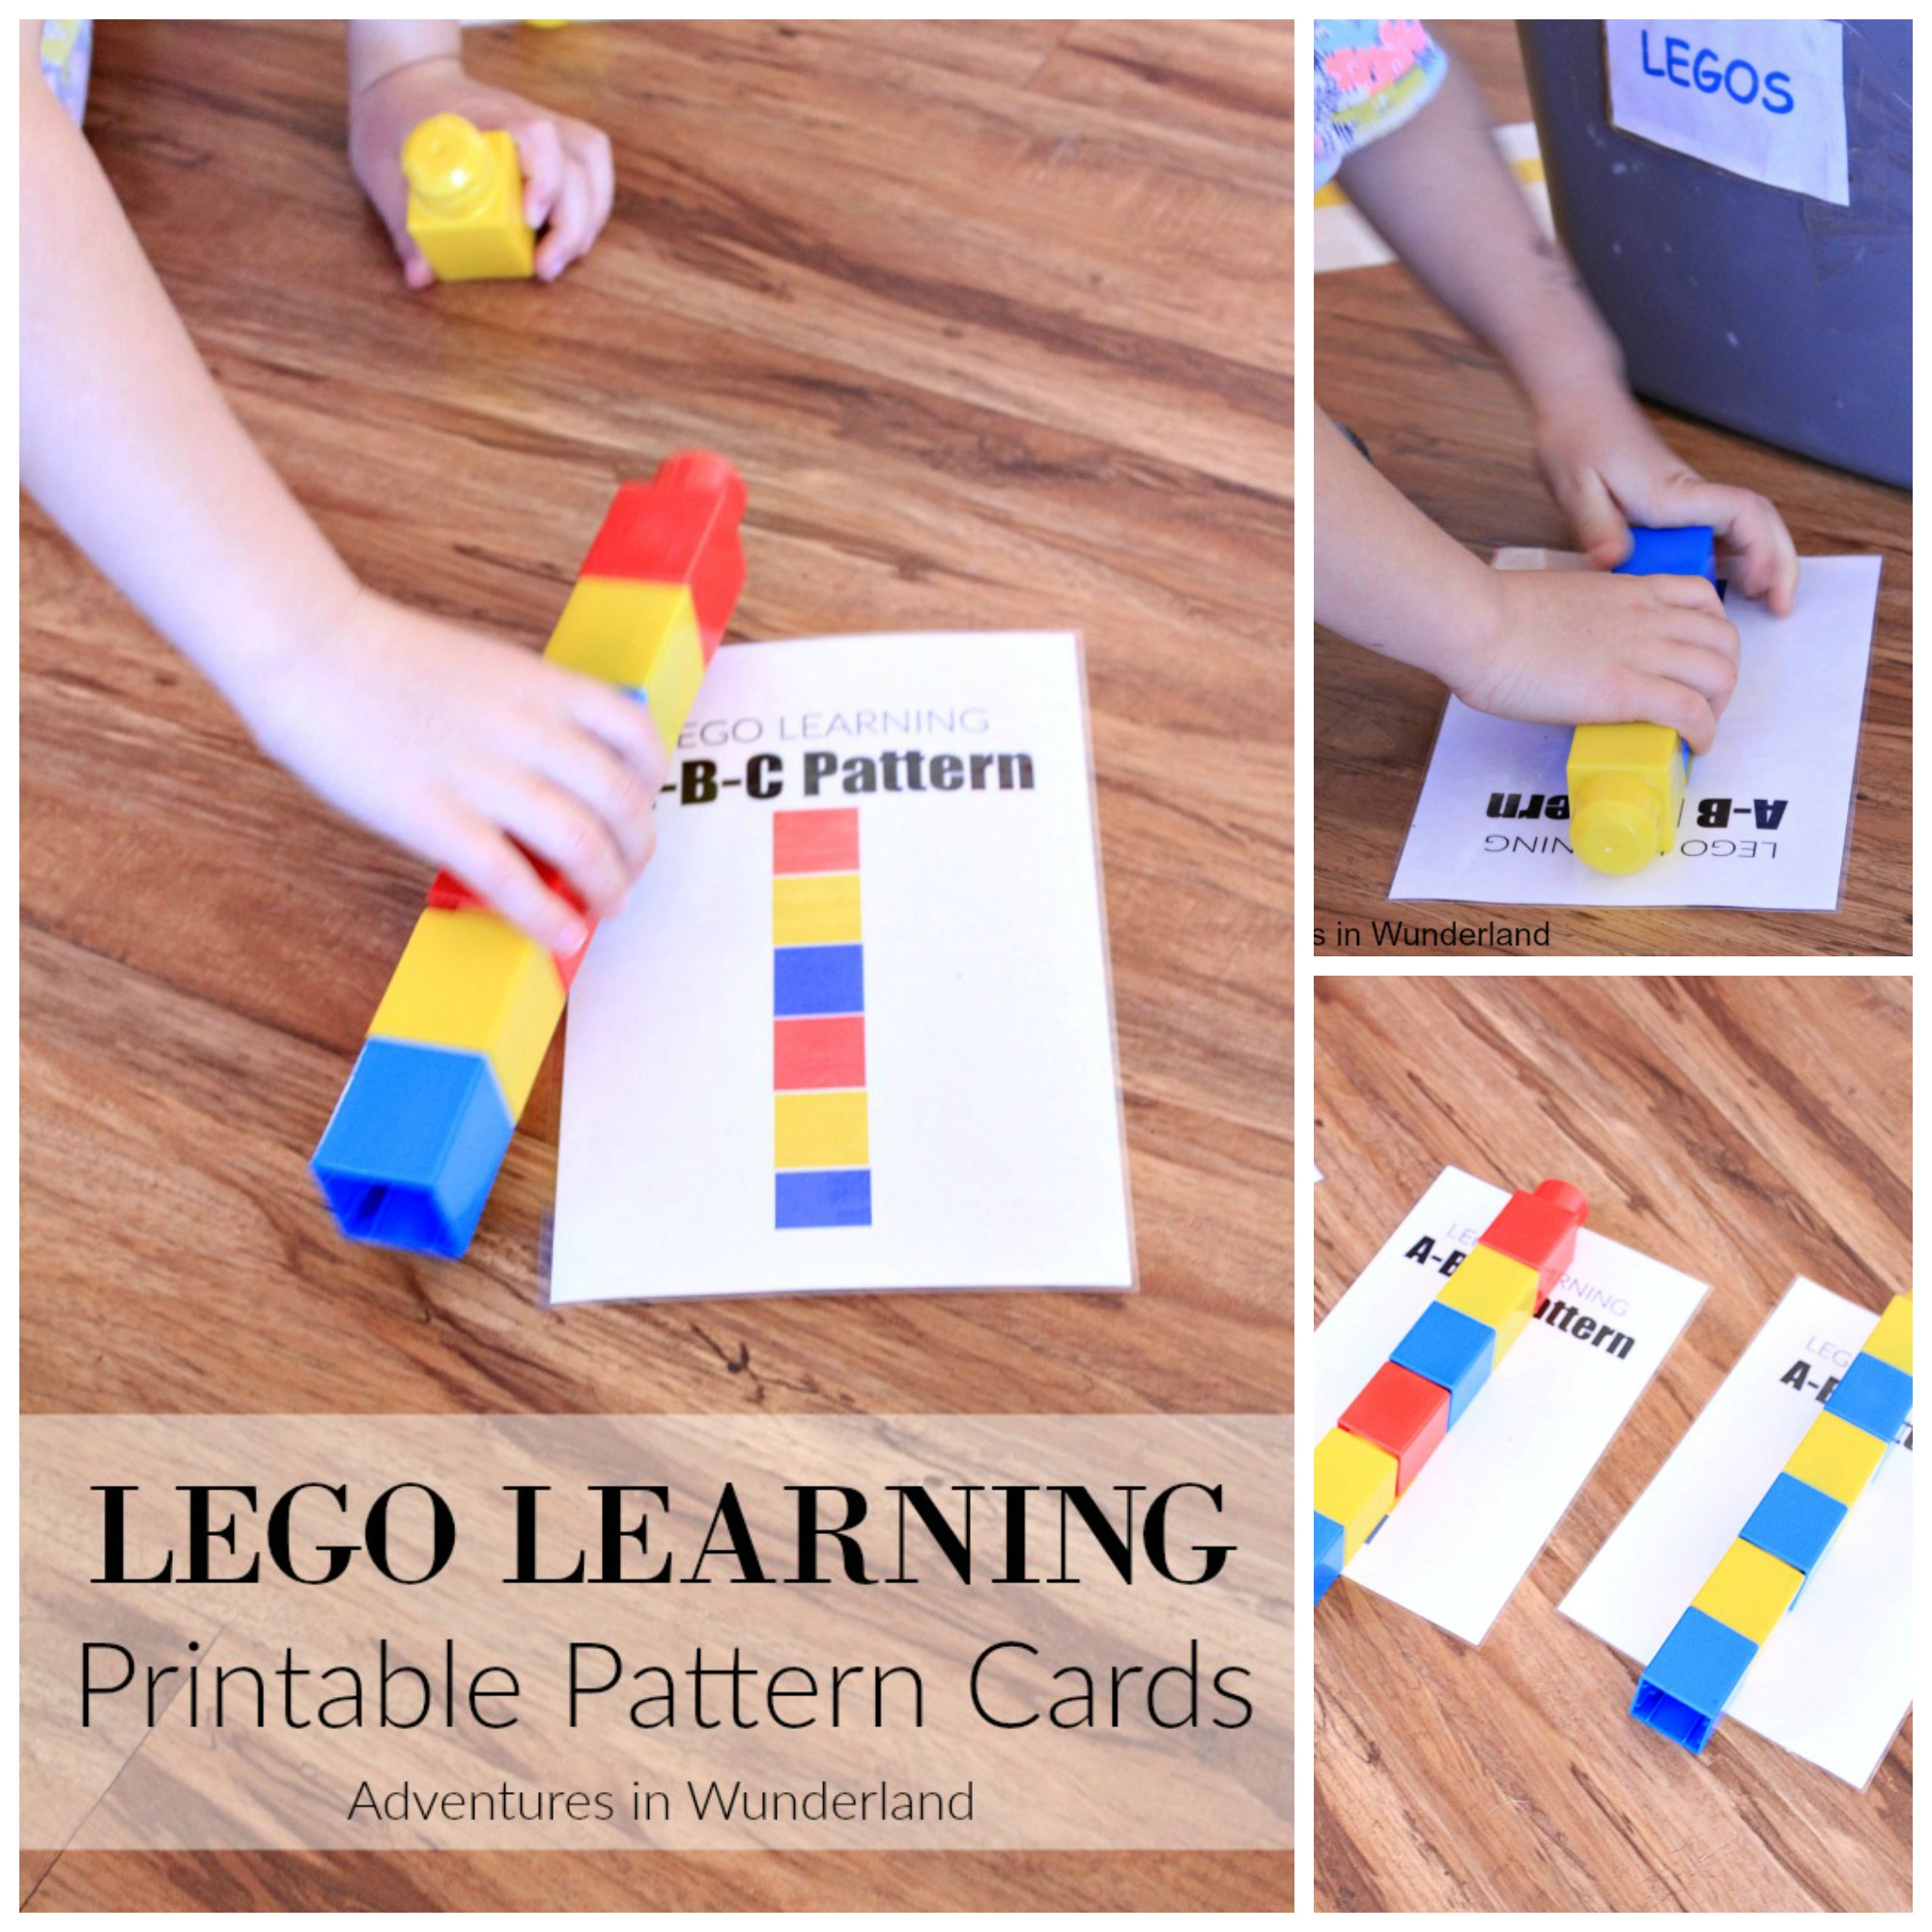 LEGO learning printable cards